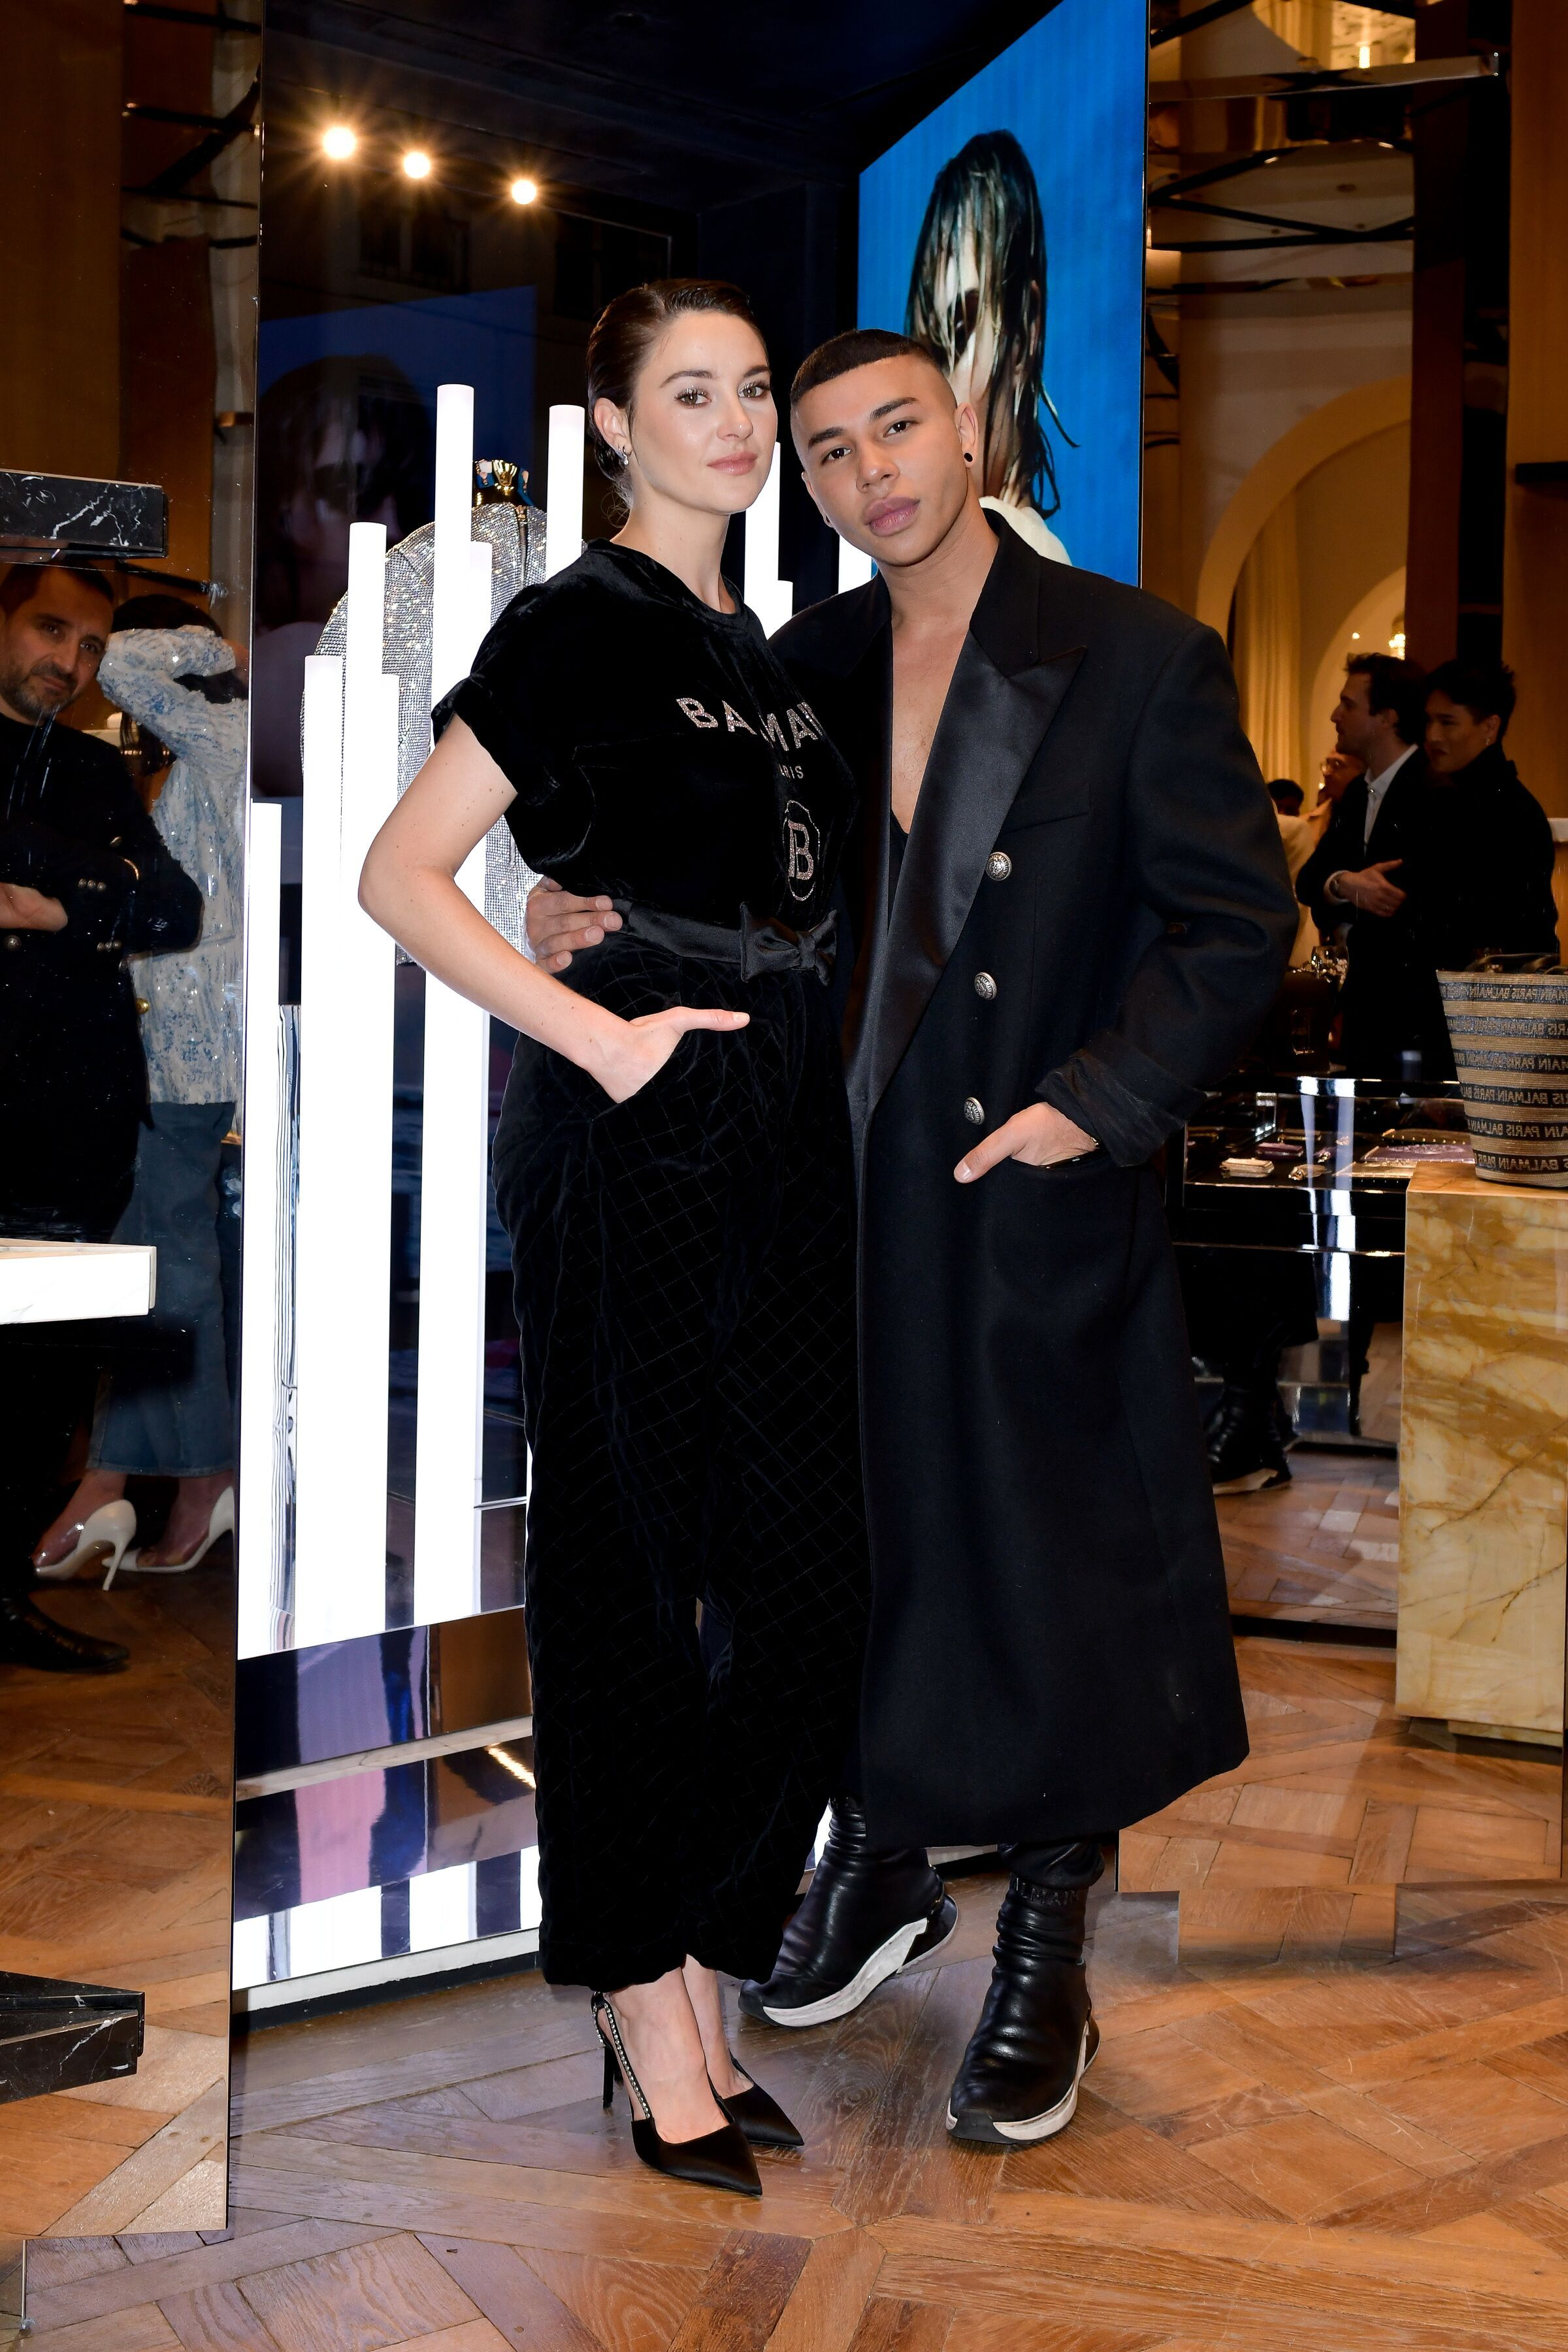 Shailene Woodley and Olivier Rousteing Shailene Woodley and Olivier Rousteing in Paris to celebrate the opening of the new Balmain store, 374 rue Saint Honoré 75001 on March 2.